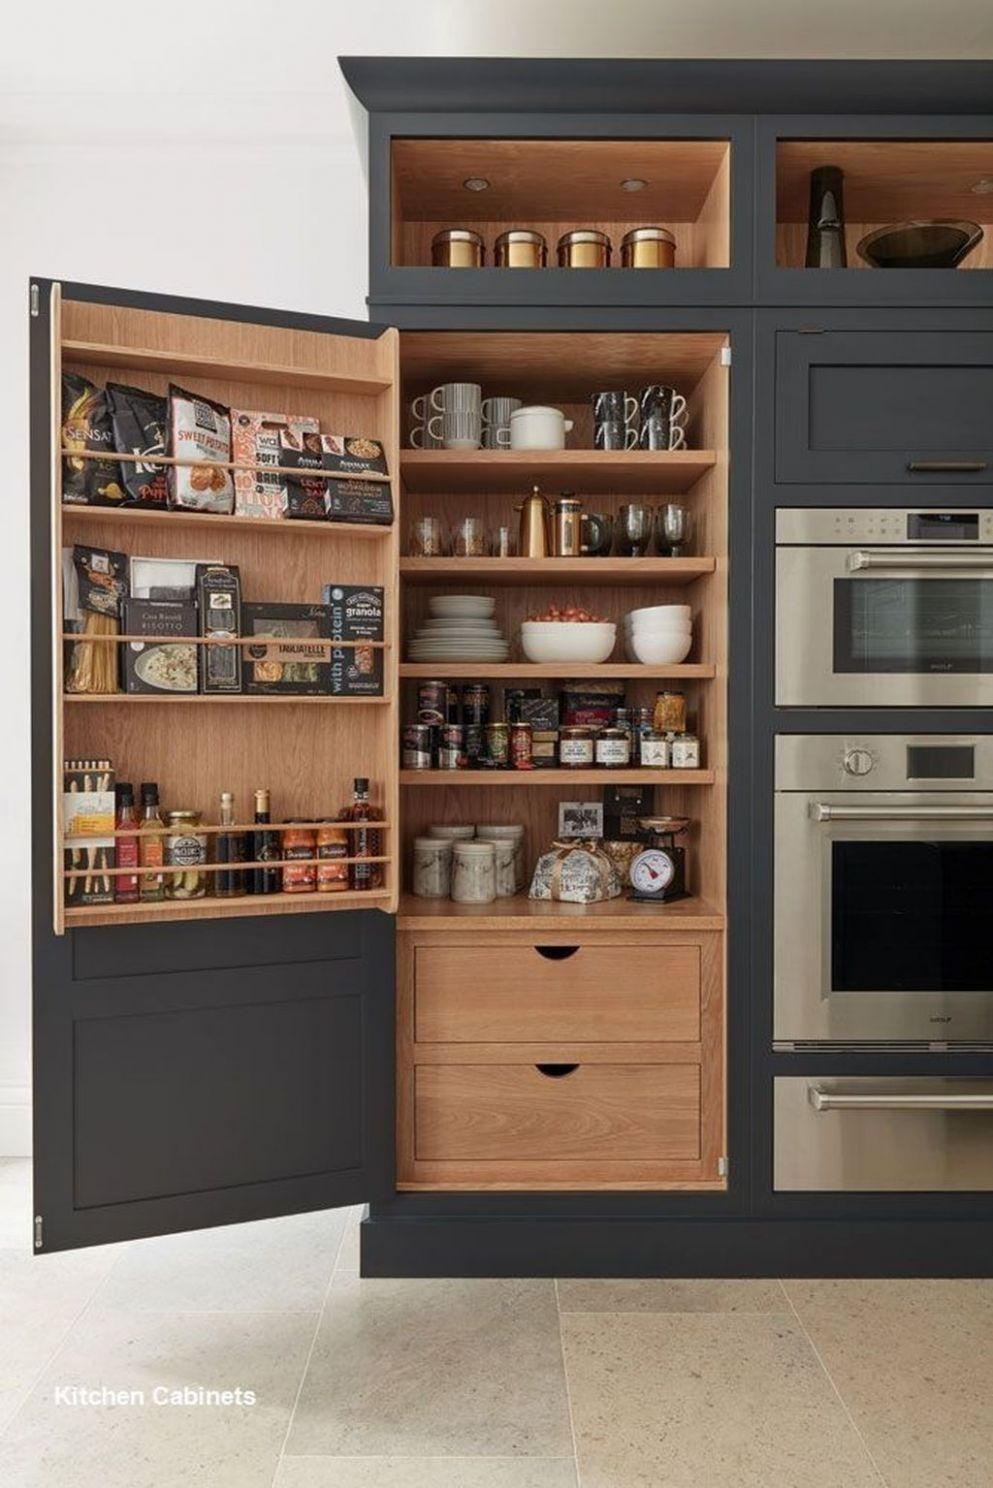 10+ Unordinary Kitchen Storage Ideas To Save Your Space | Kitchen ...